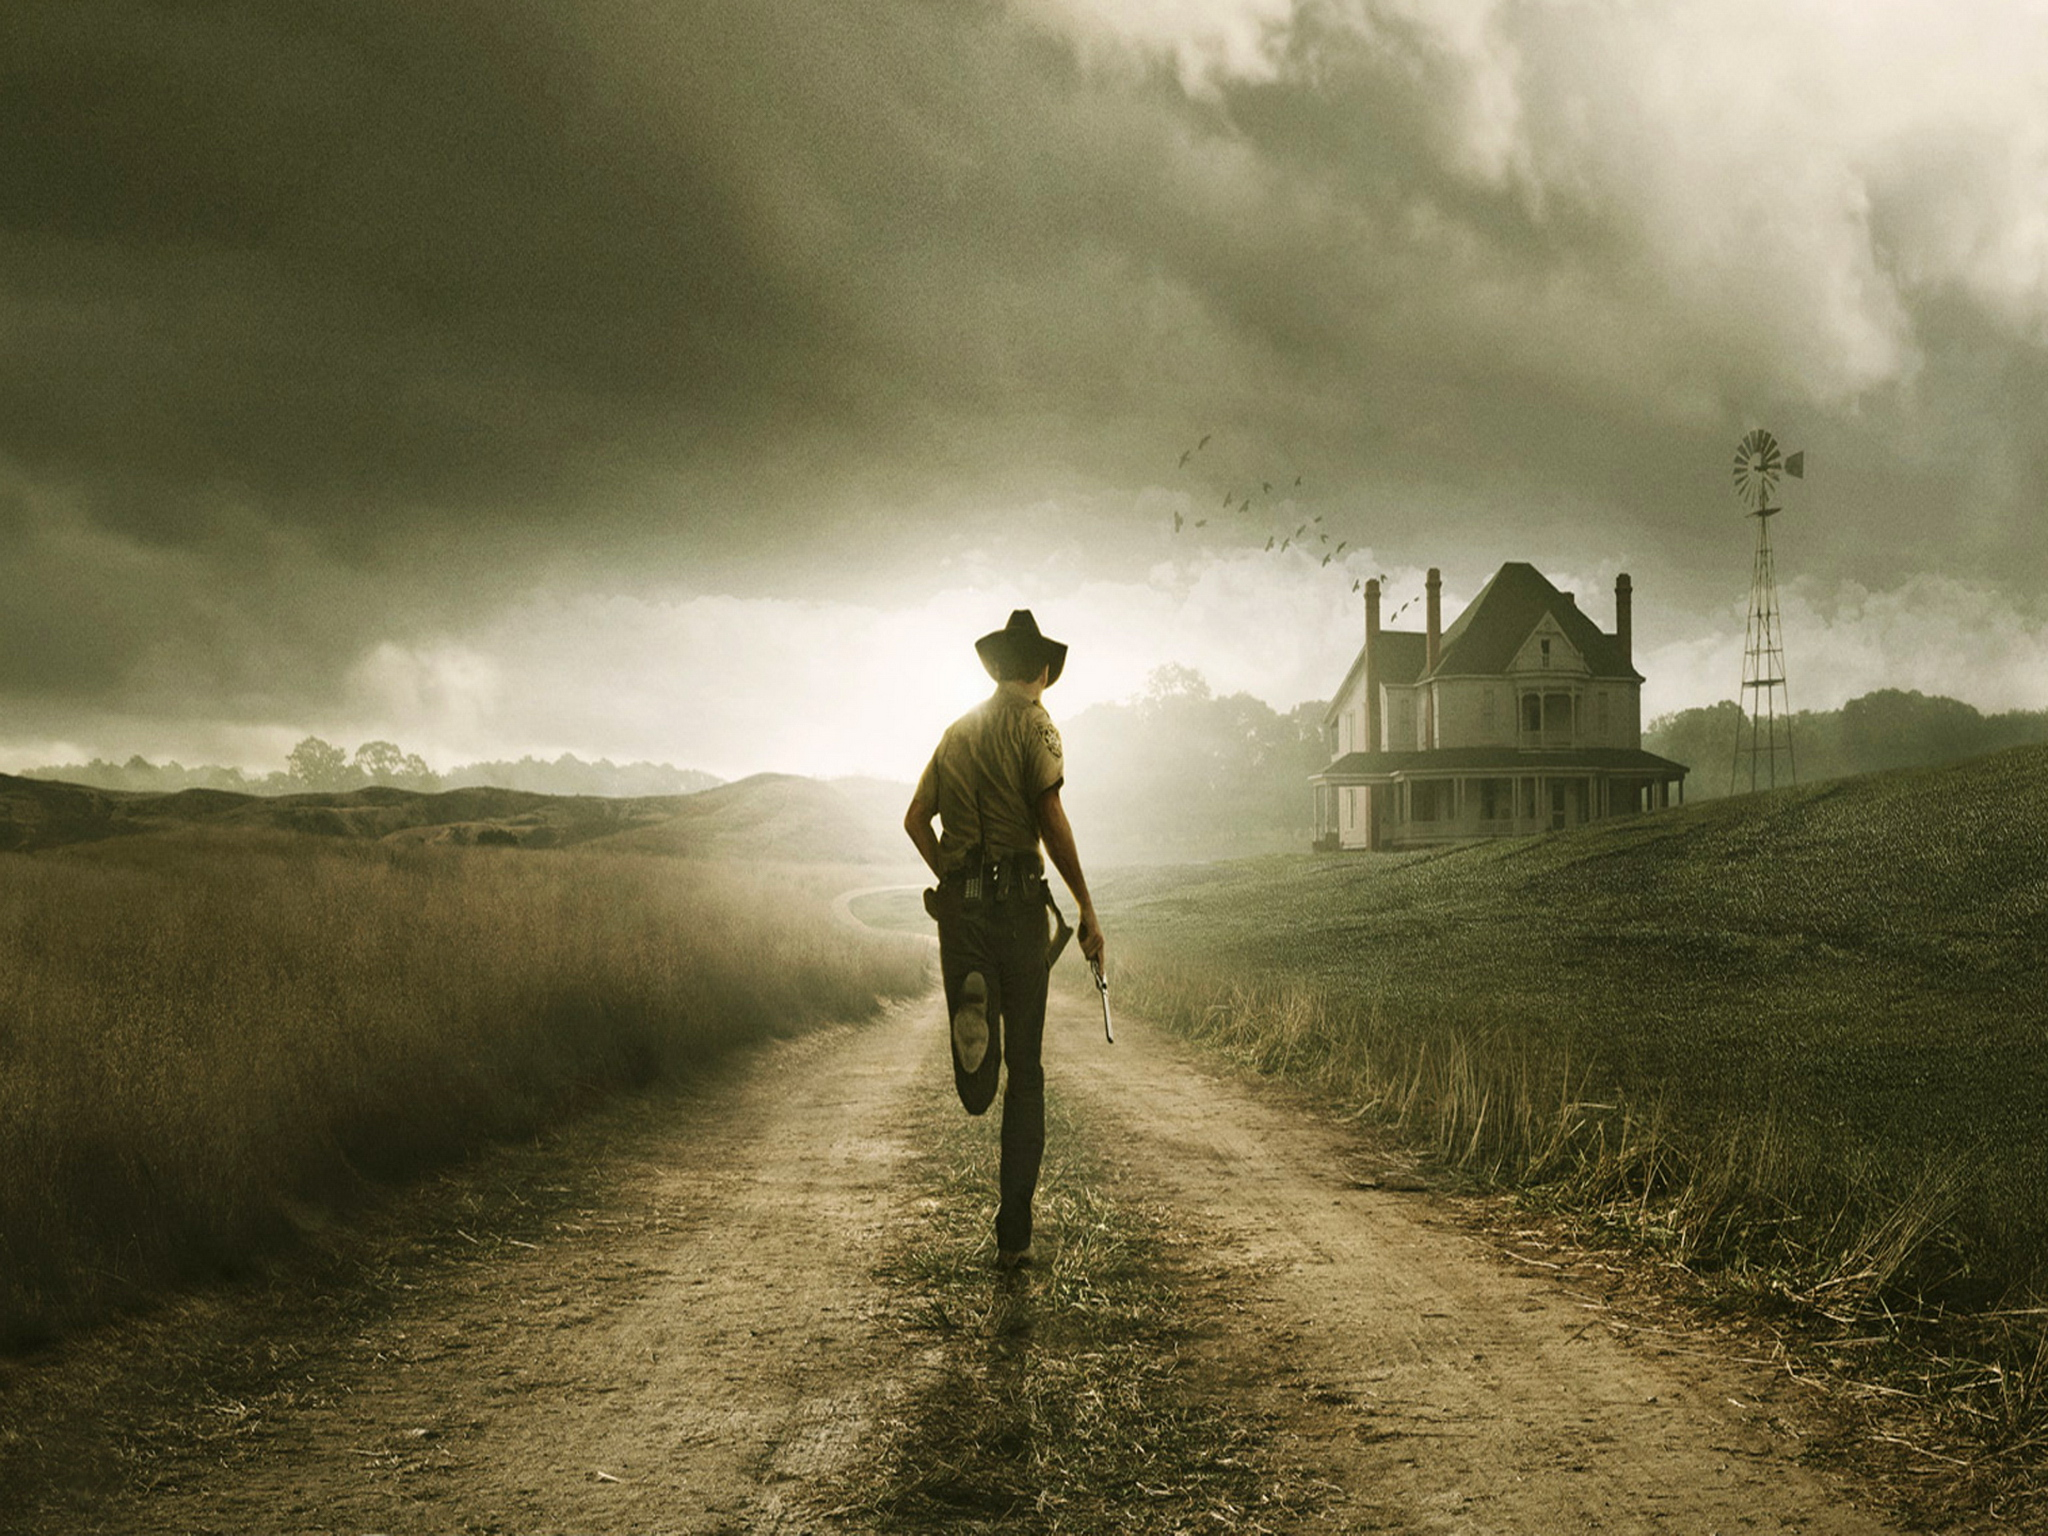 Free Download The Walking Dead Ipad Wallpaper New Ipad 3 1